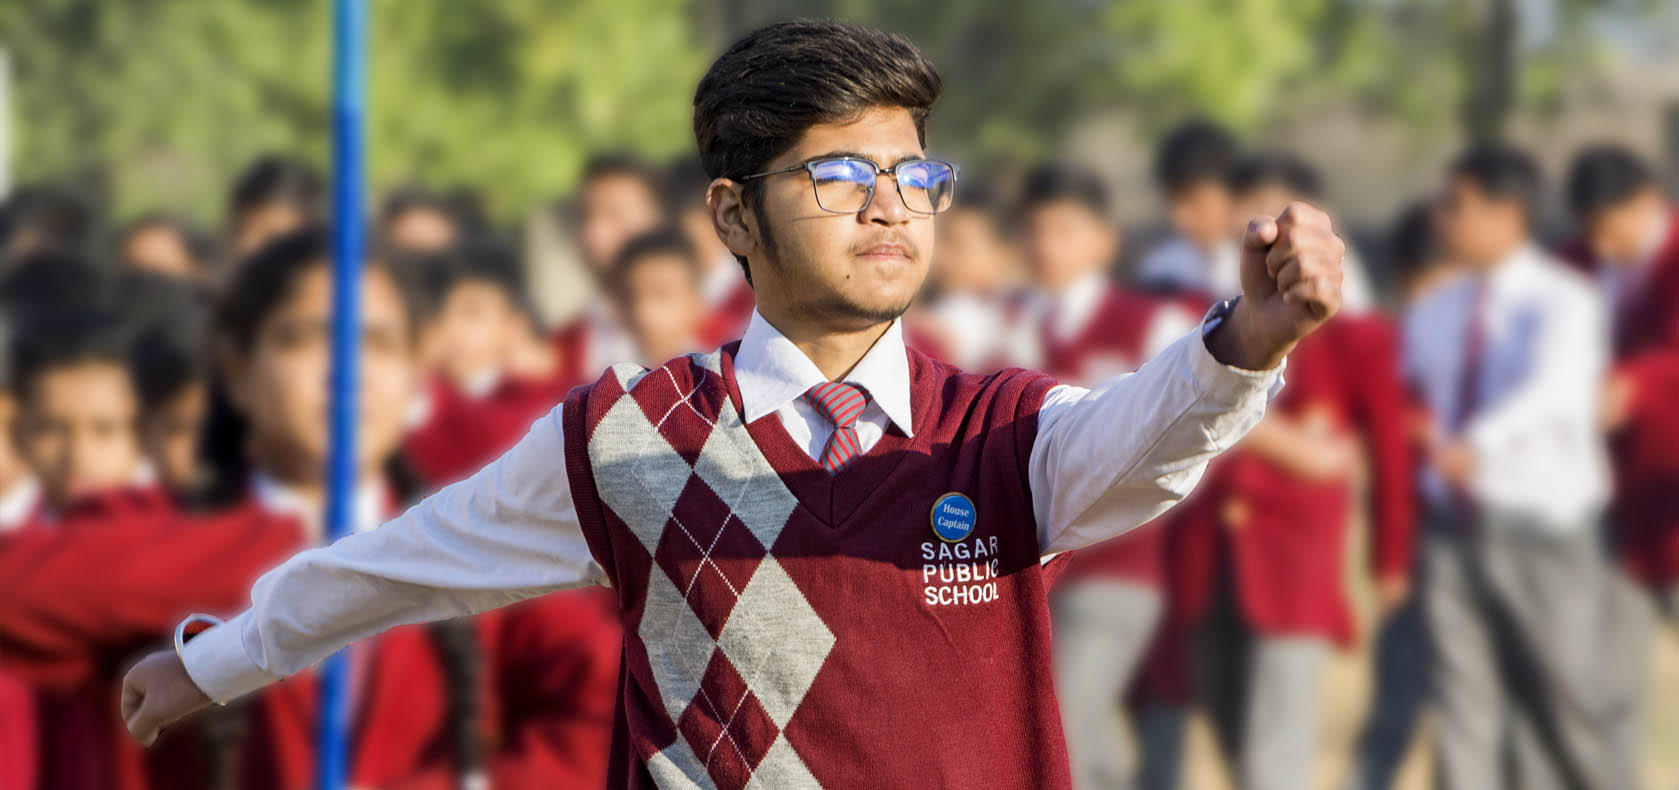 cbse schools in central india, schools in central india, sagar public school